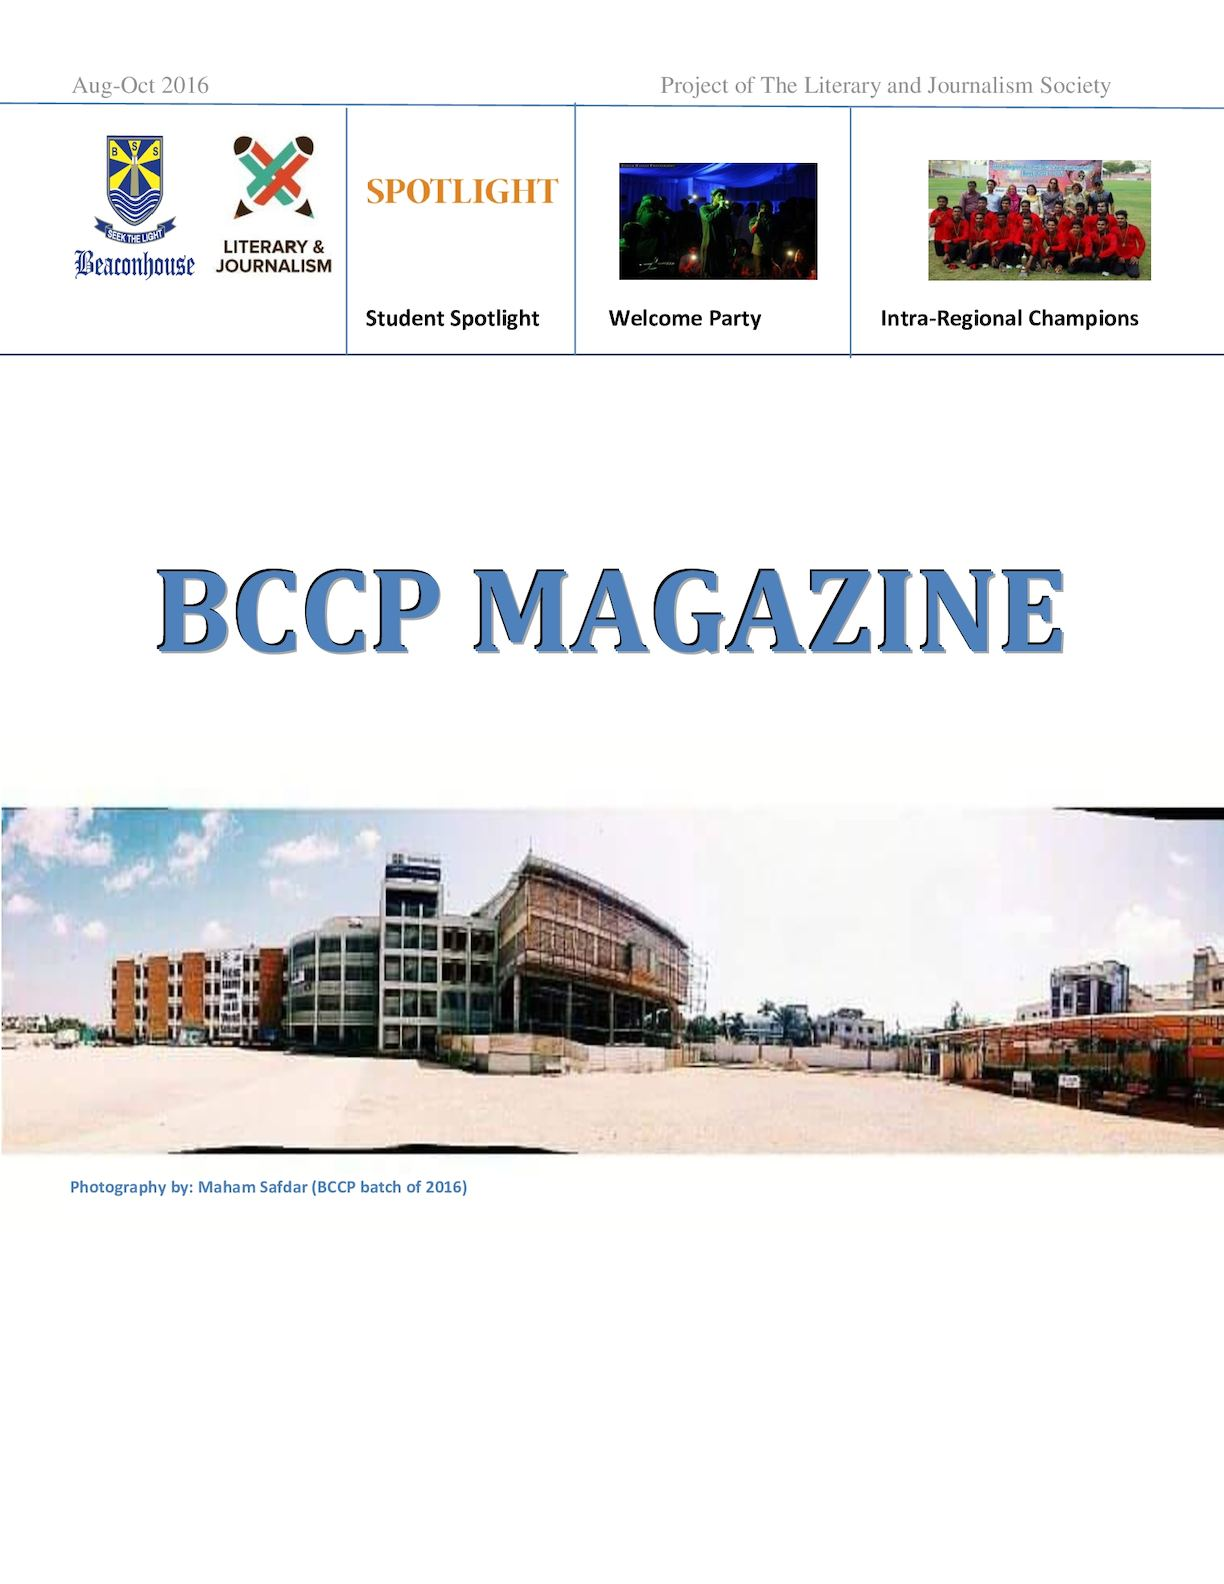 BCCP Magazine Aug-Oct